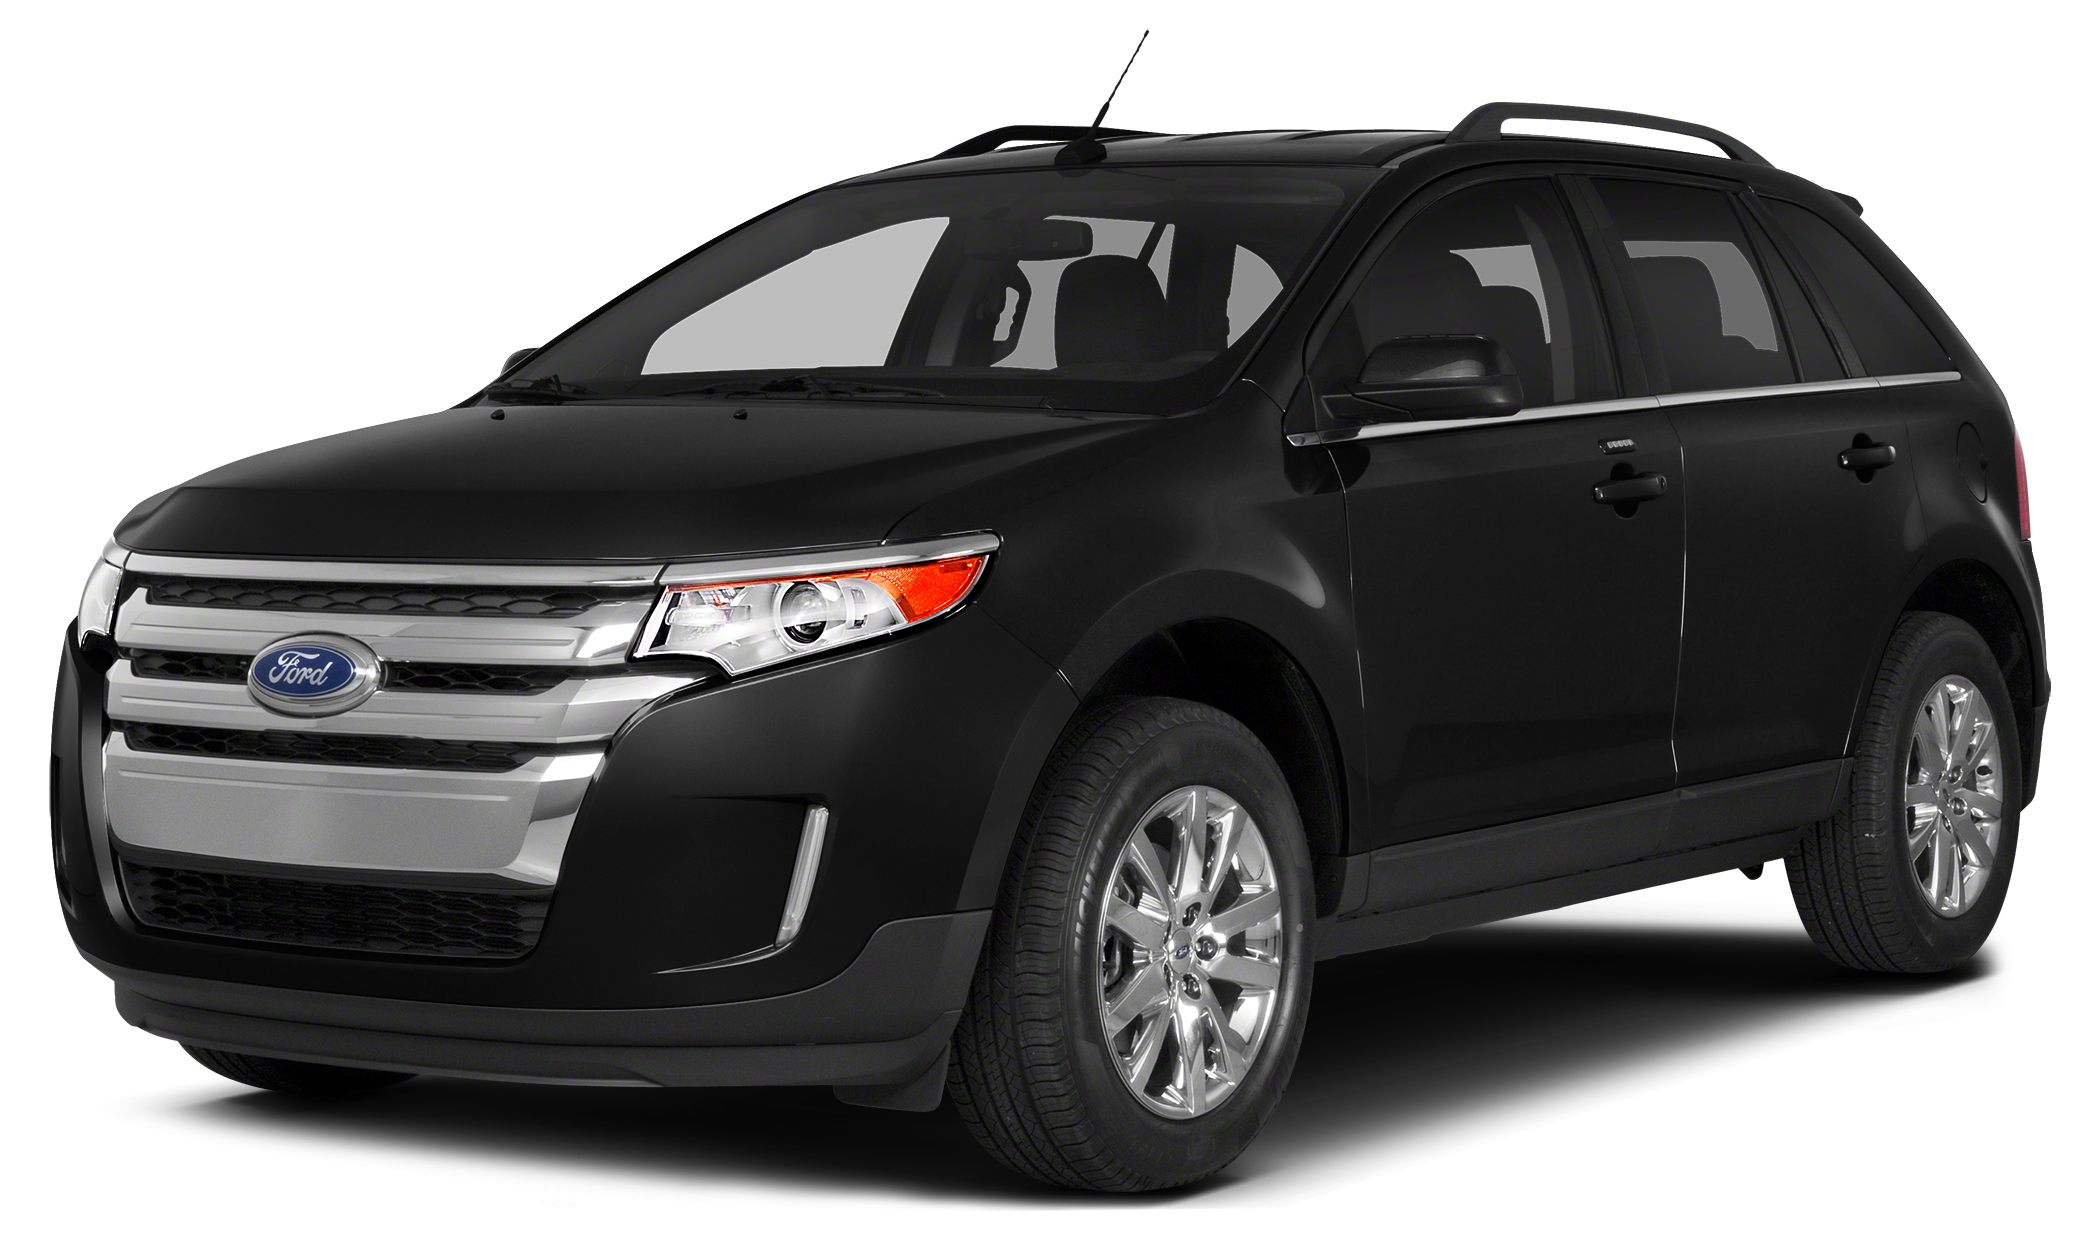 2014 Ford Edge Limited Miles 5Color Tuxedo Black Metallic Stock F306922 VIN 2FMDK3KC6EBB8665